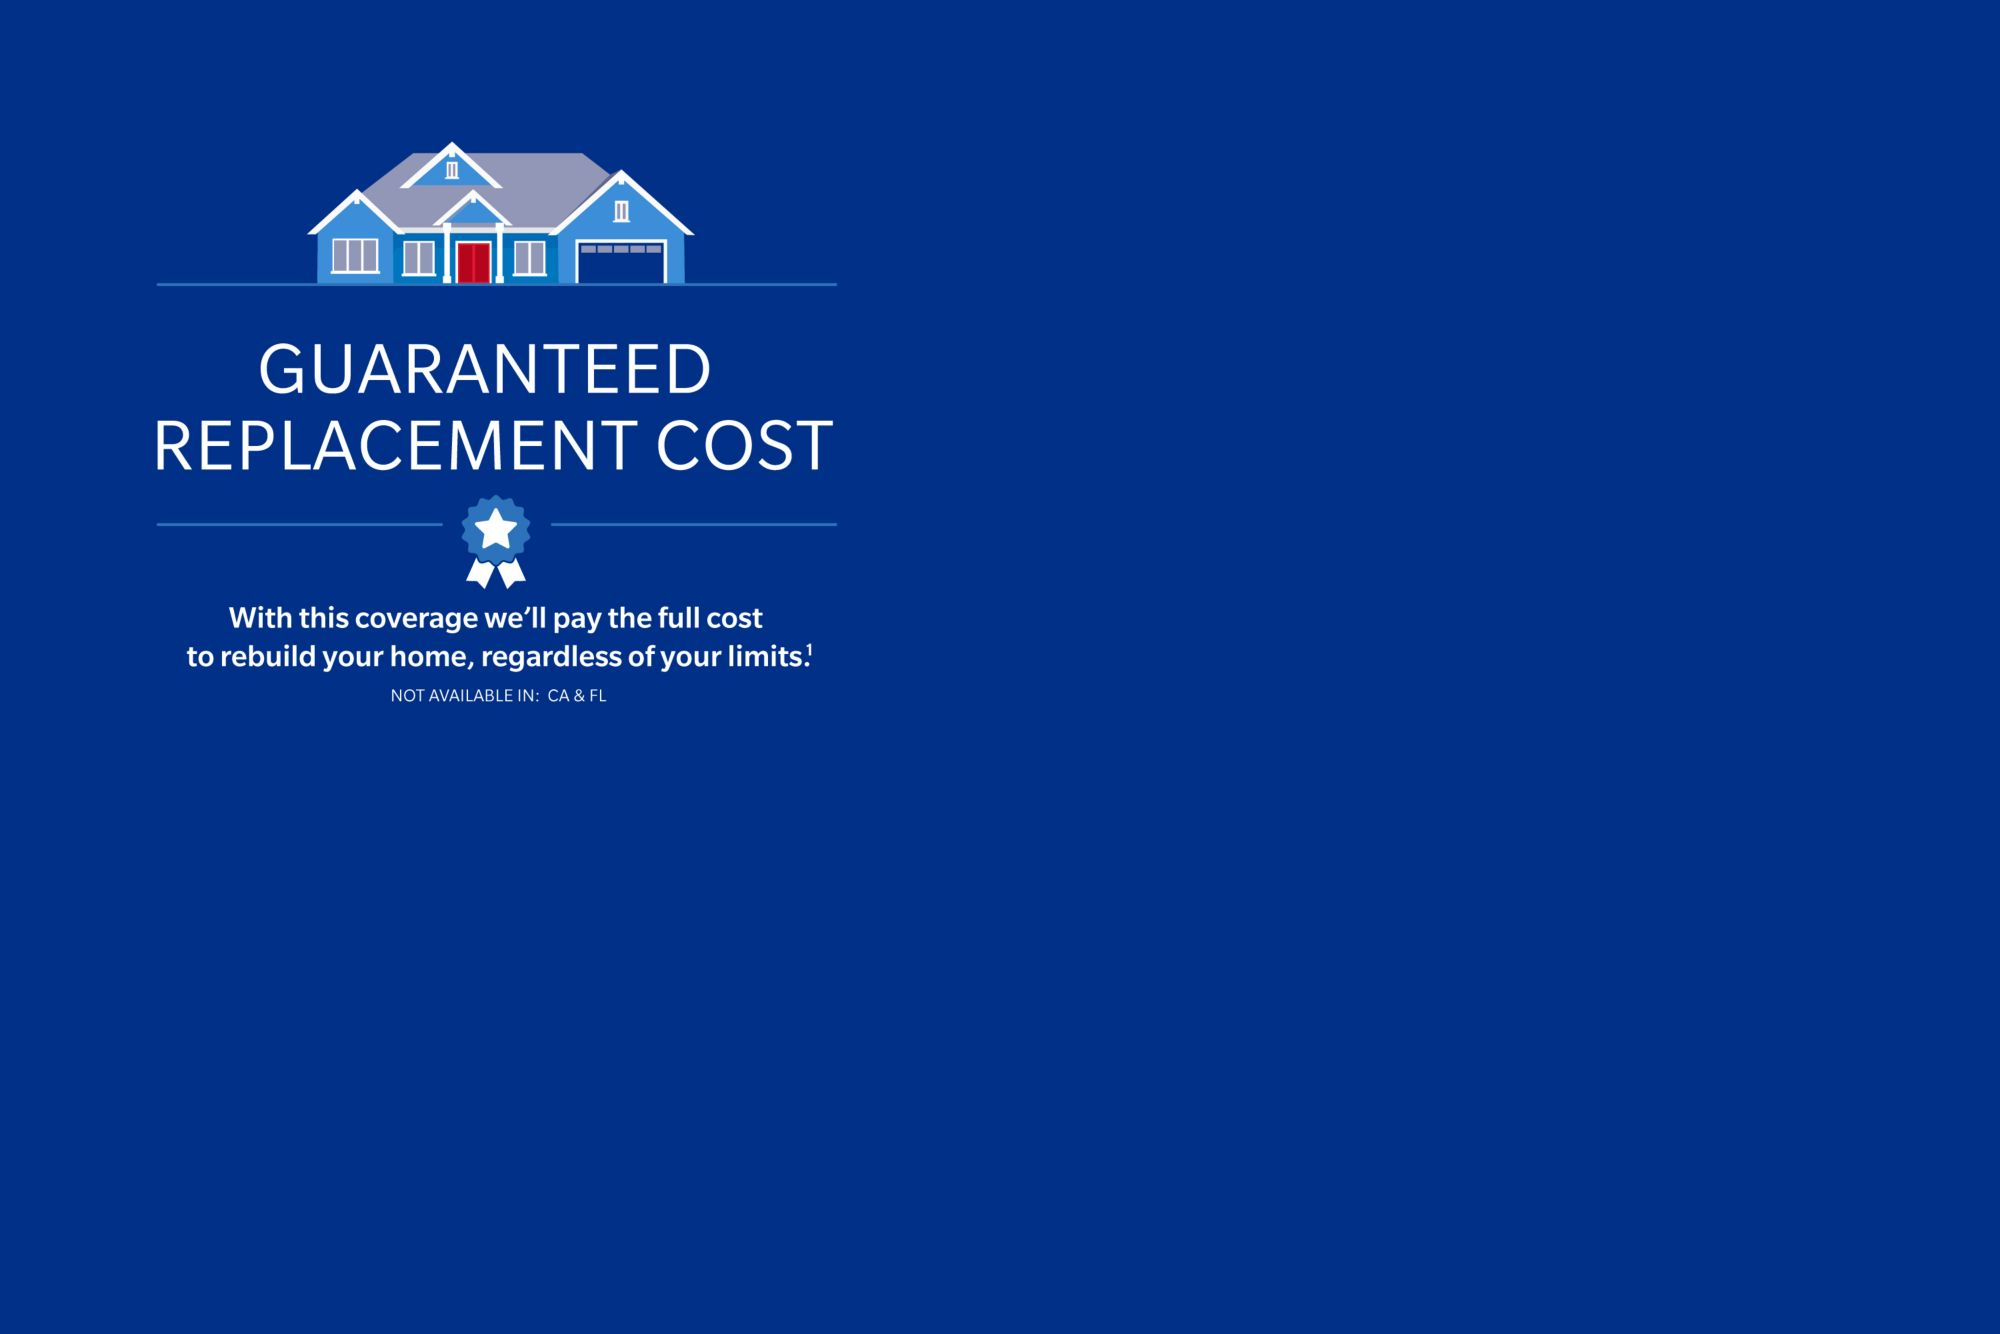 Guaranteed replacement cost with this coverage we we'll pay the full cost to rebuild your home, regardless of your limits.